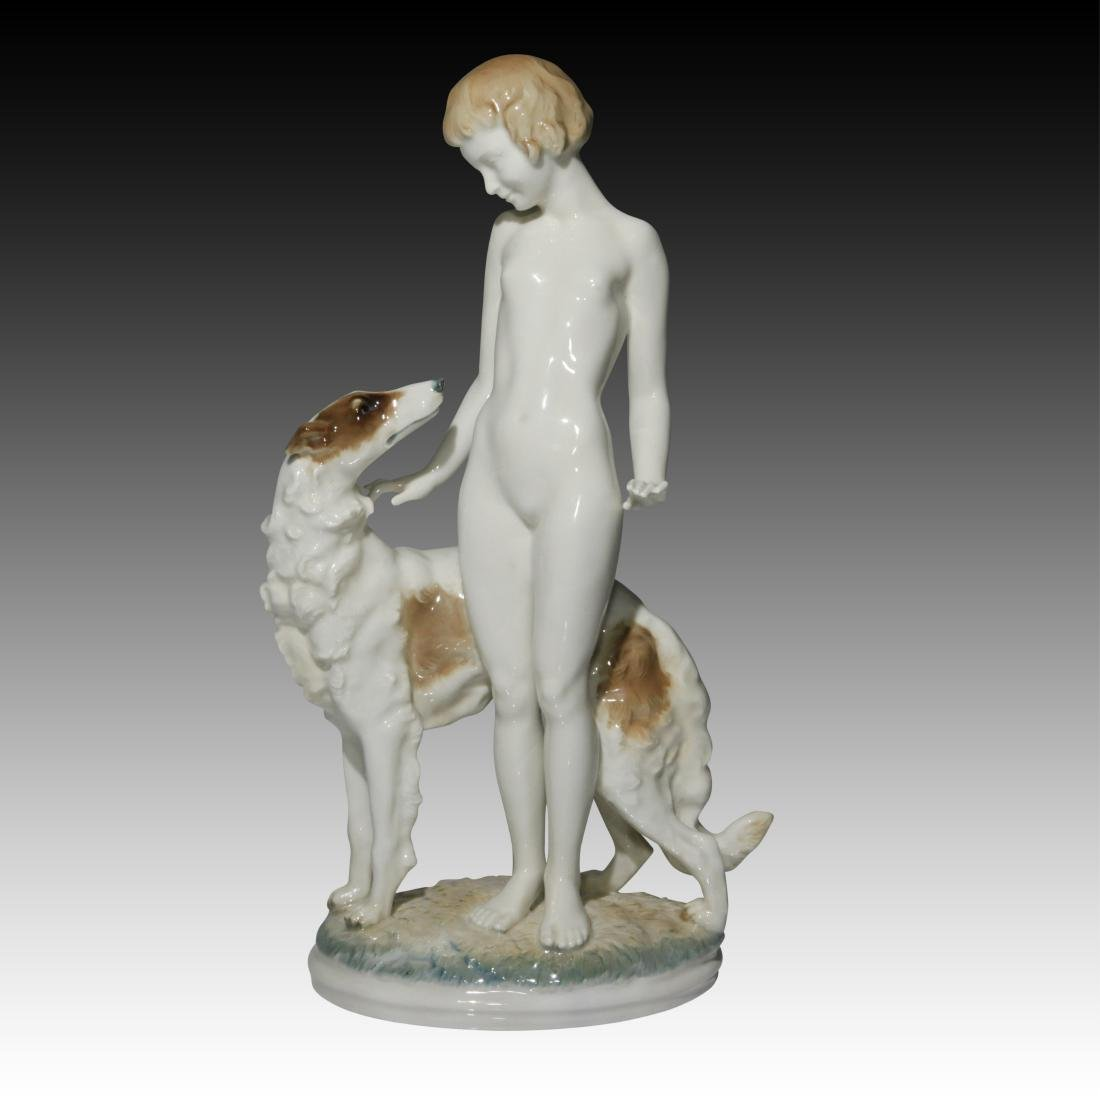 Hutschenreuther Nude Woman with Borzoi Figurine